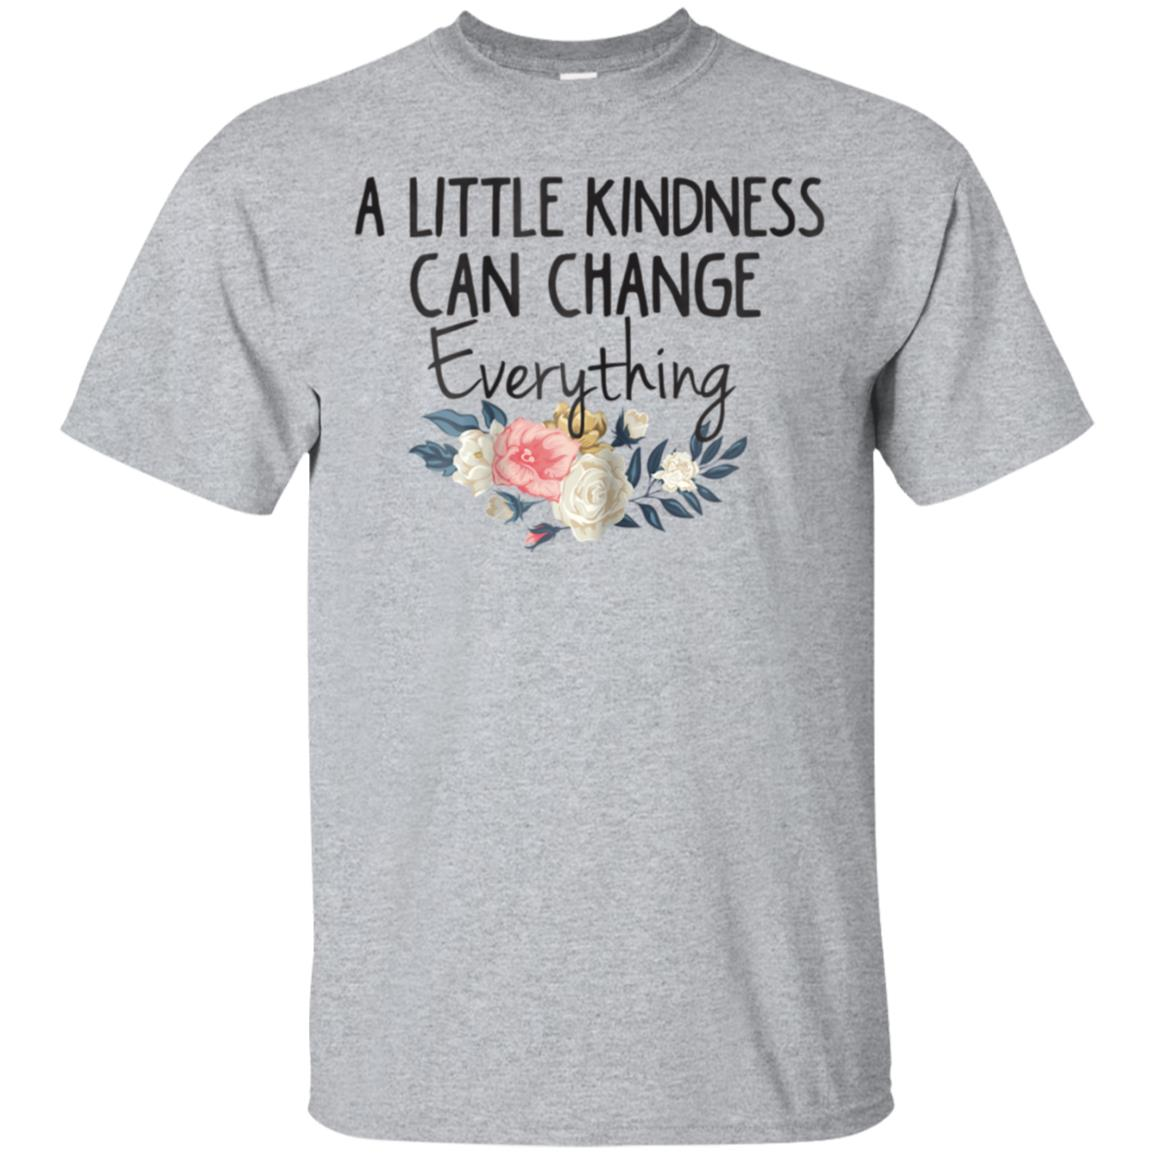 A Little Kindness Can Change Everything Shirt Kind Tshirt 99promocode